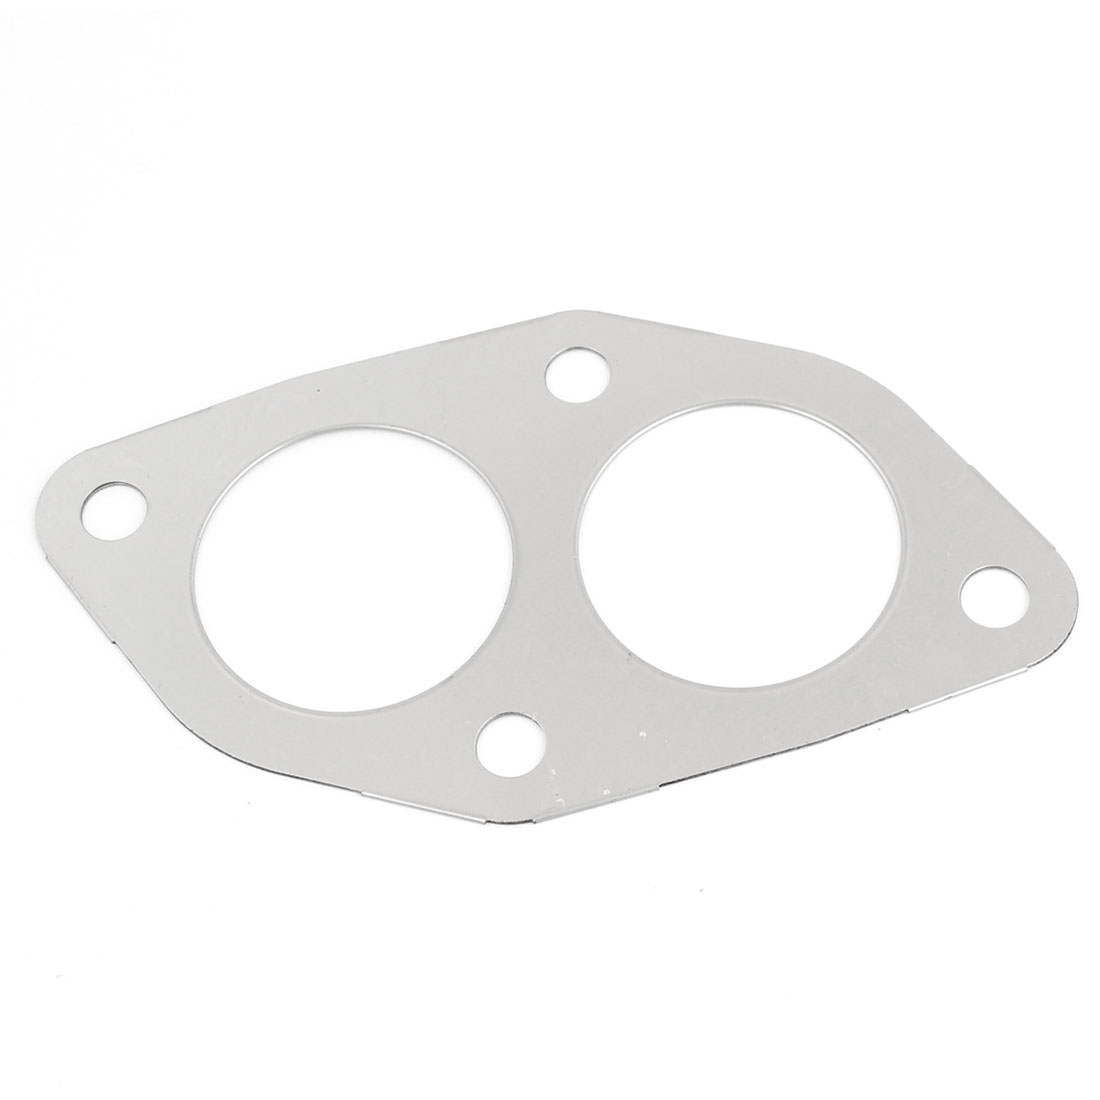 1HO 253 115 Auto Car Engine Exhaust Pipe Gasket Repairing Part